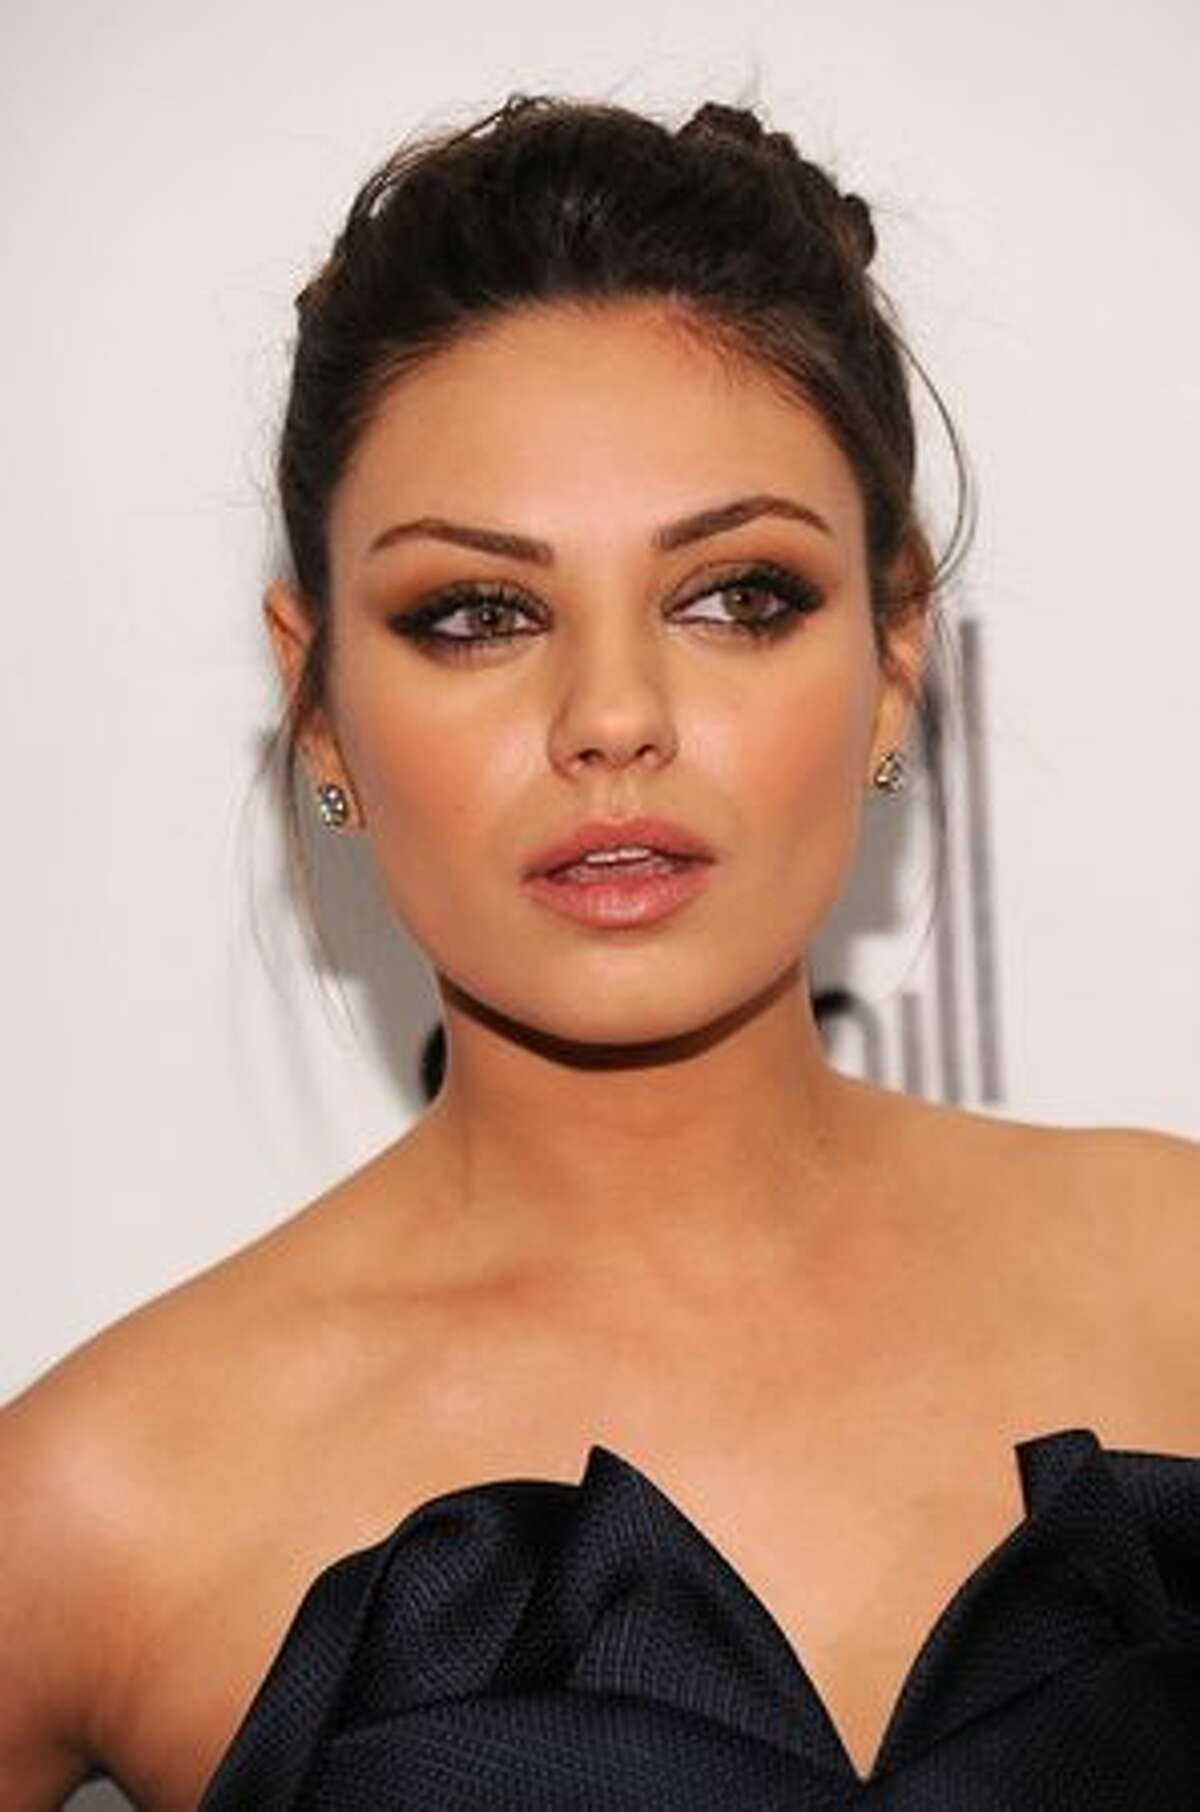 Actress Mila Kunis attends IFP's 20th Annual Gotham Independent Film Awards in New York City.